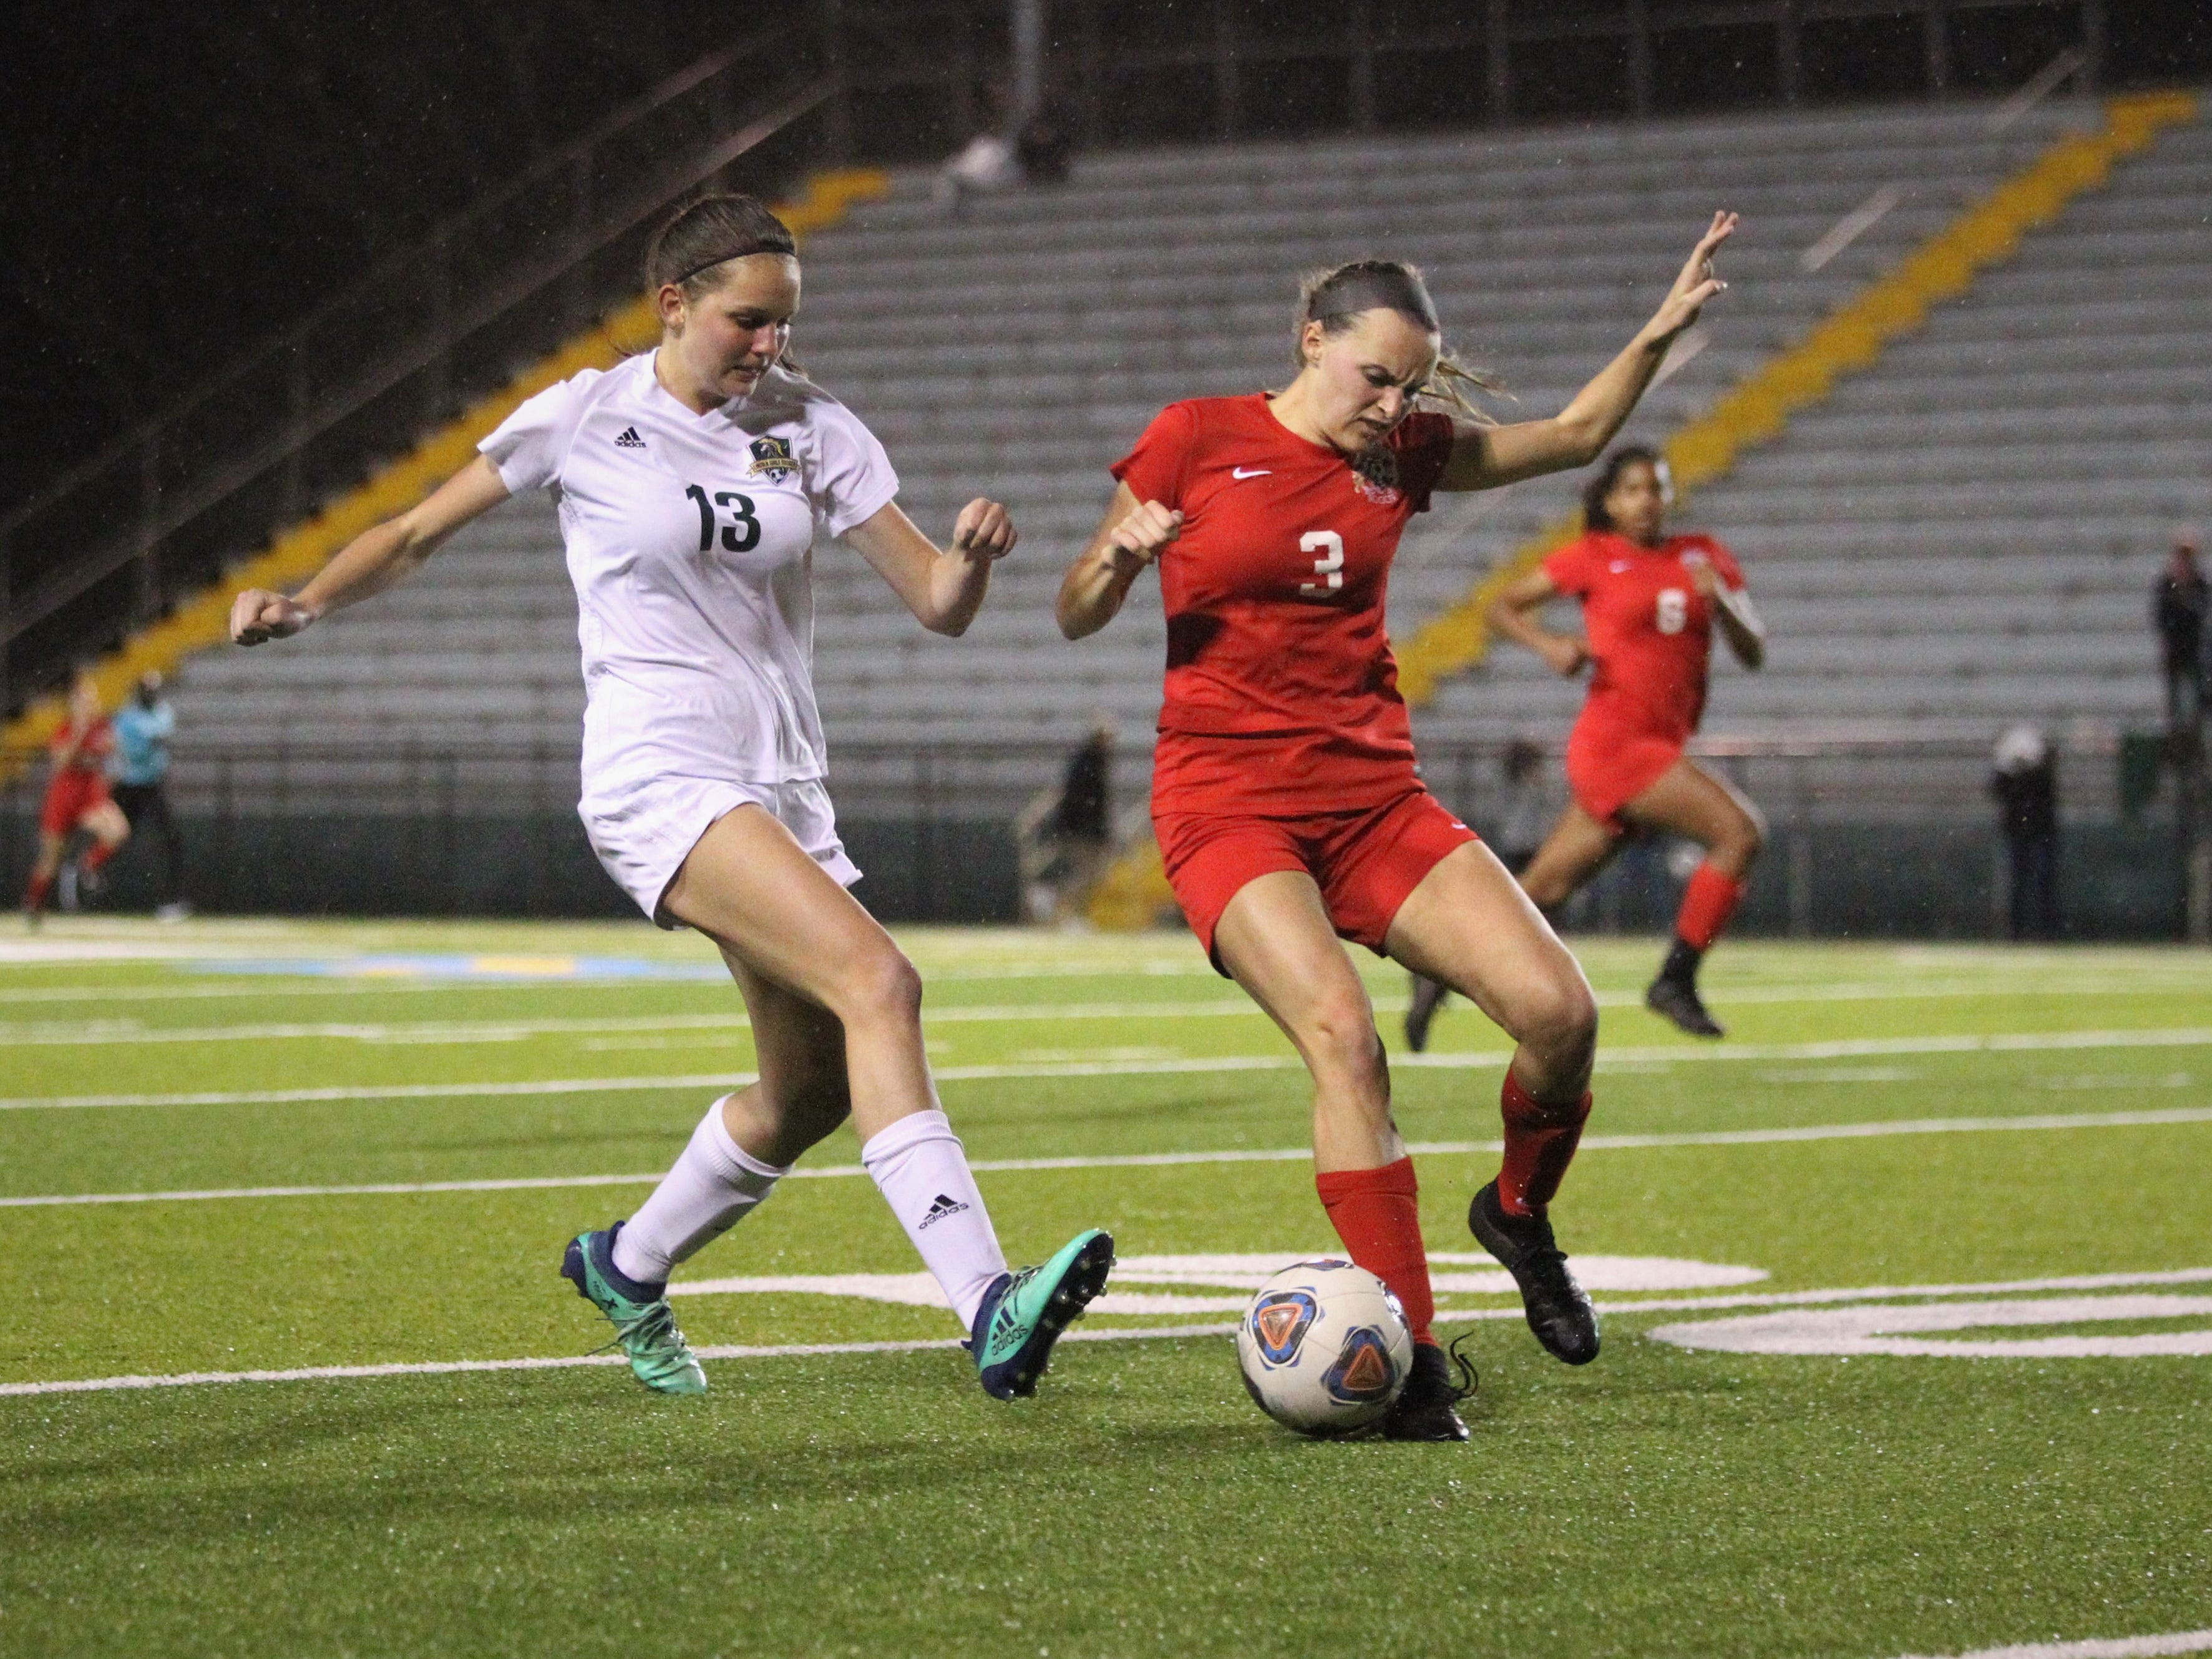 Leon senior defender Madison Rumenik gets to a through ball before Lincoln's Olivia Rehwinkel can as Leon's girls soccer team beat Lincoln 2-1 in the District 2-4A championship at Gene Cox Stadium on Feb. 1, 2019.